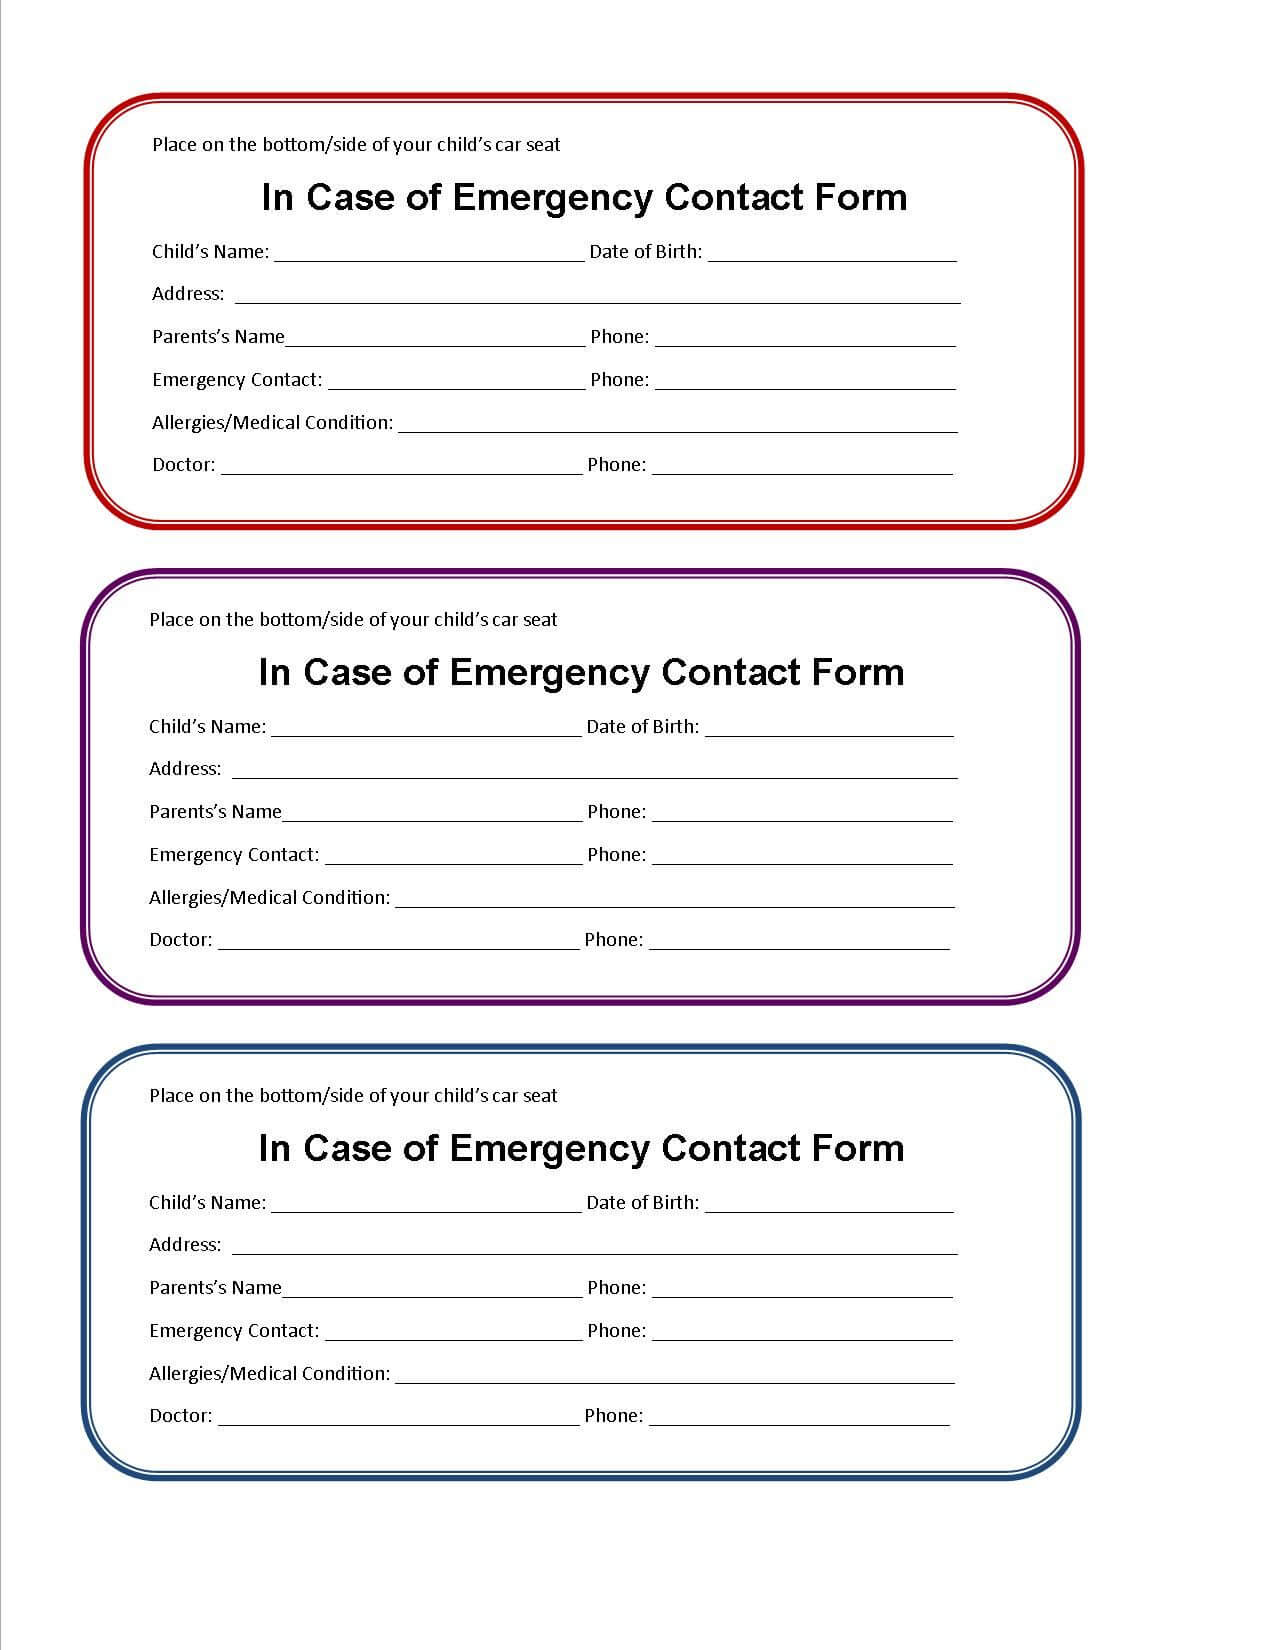 Printable Emergency Contact Form For Car Seat | Emergency Within In Case Of Emergency Card Template